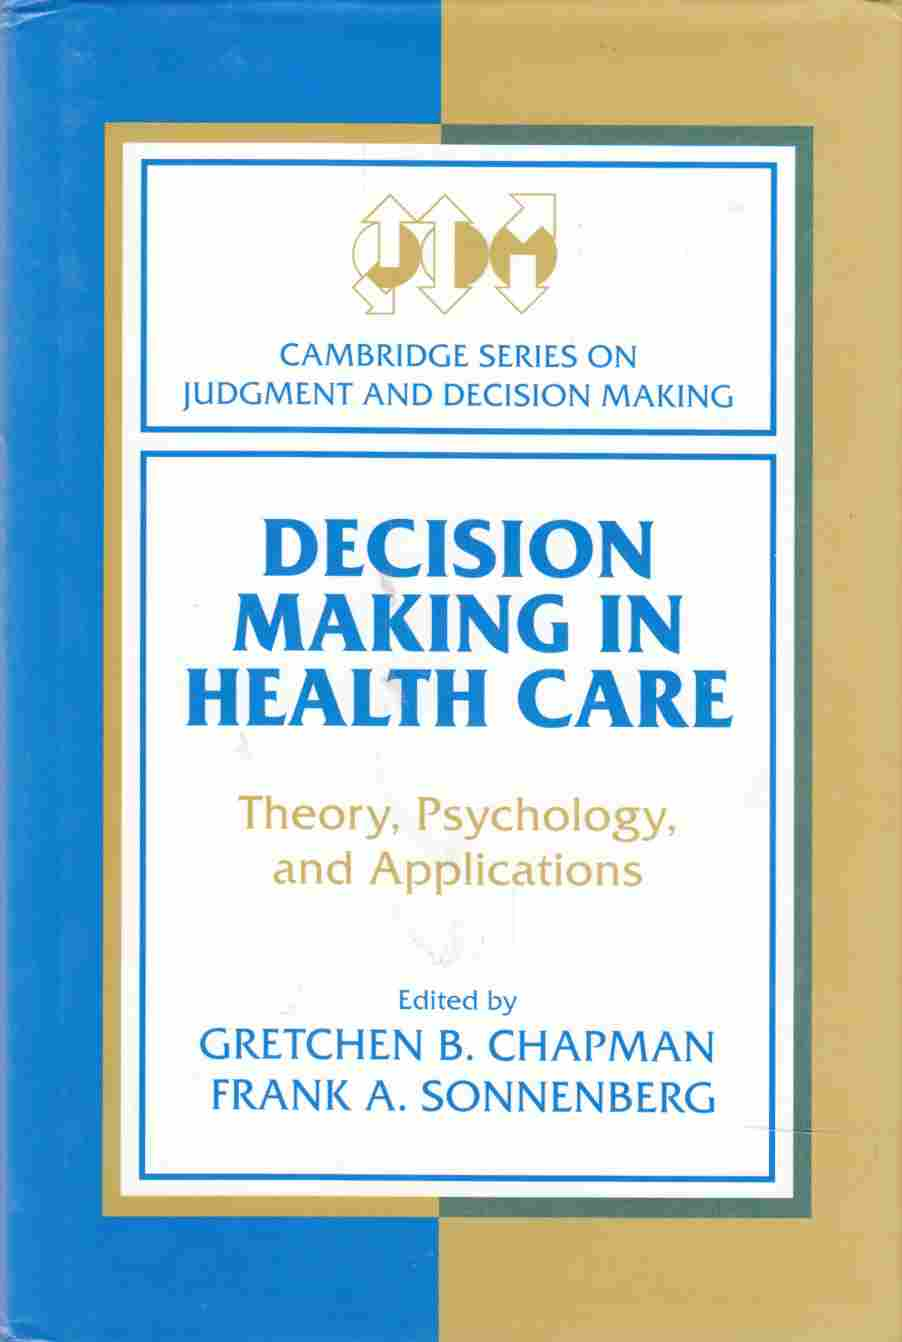 Image for Decision Making in Health Care Theory, Psychology, and Applications